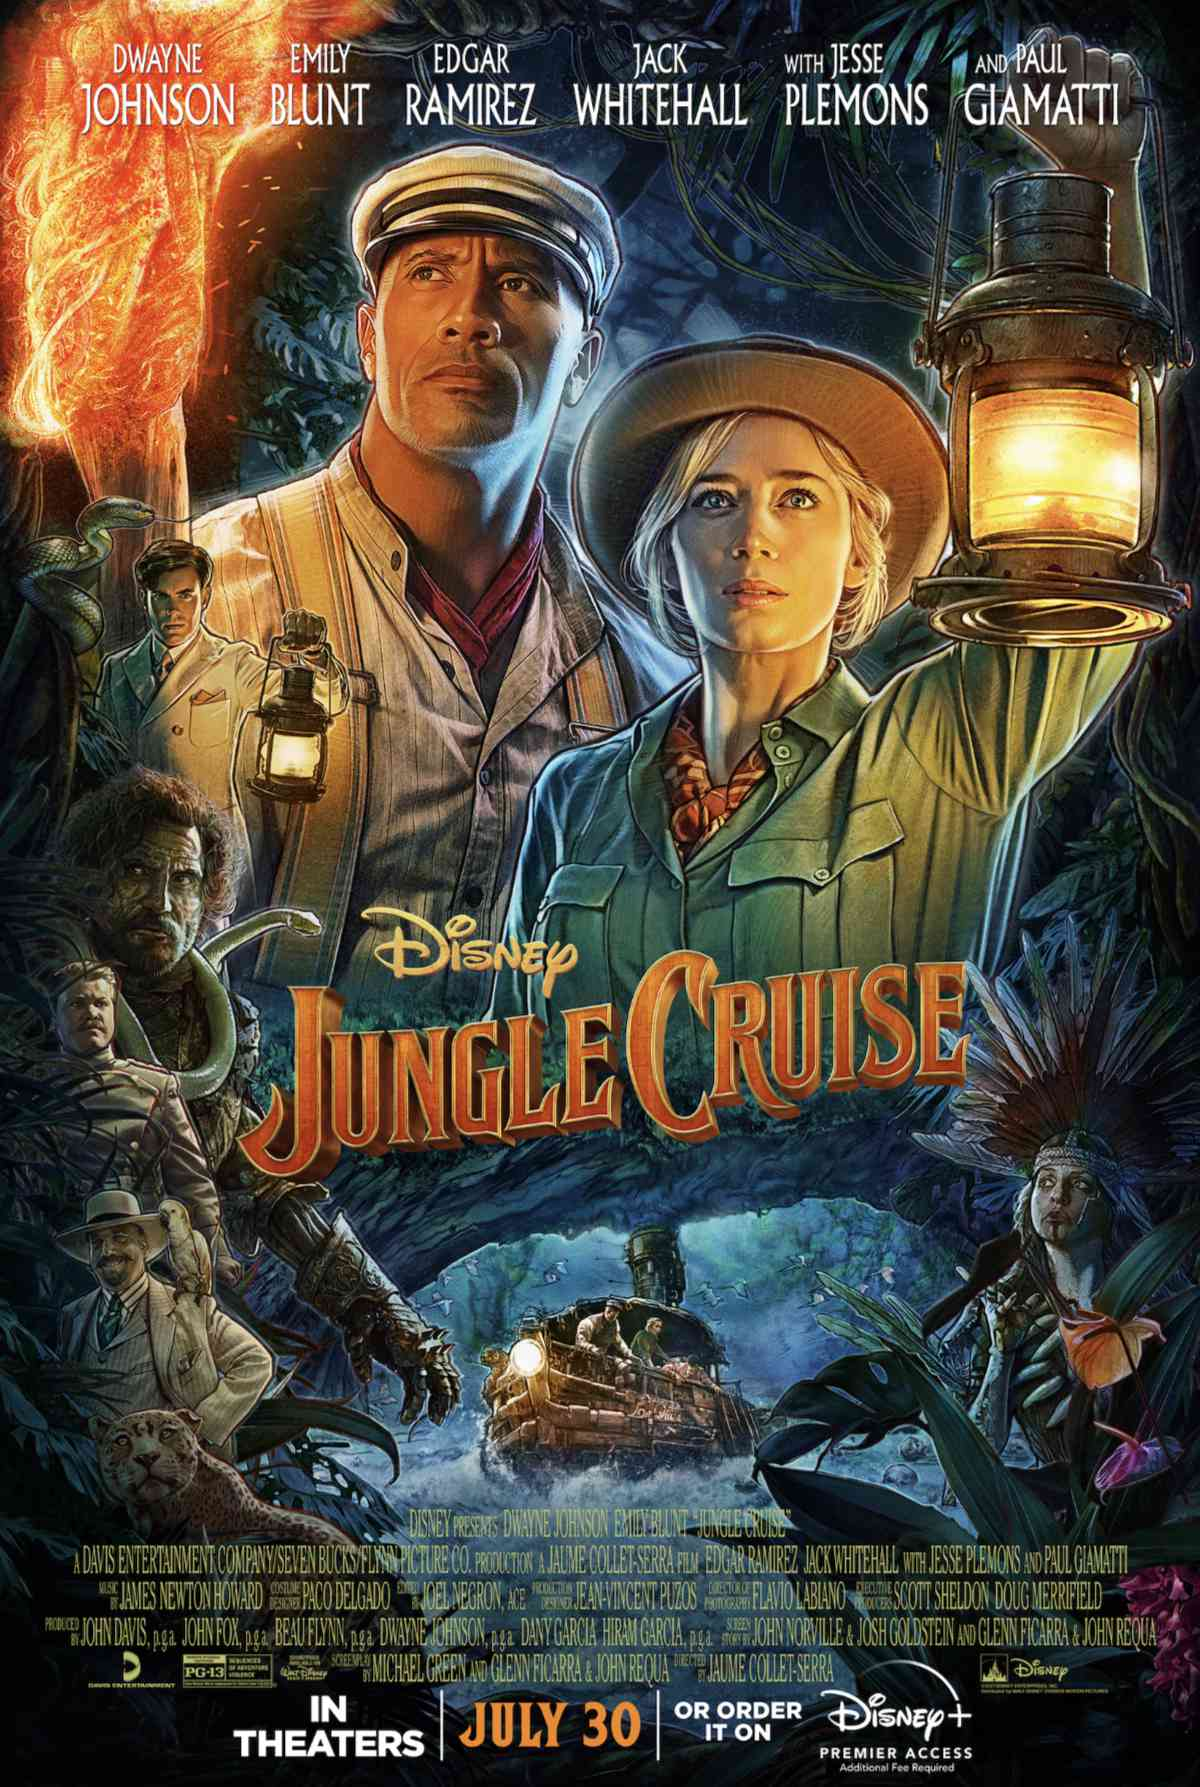 Dwayne Johnson and Emily Blunt in Jungle Cruise